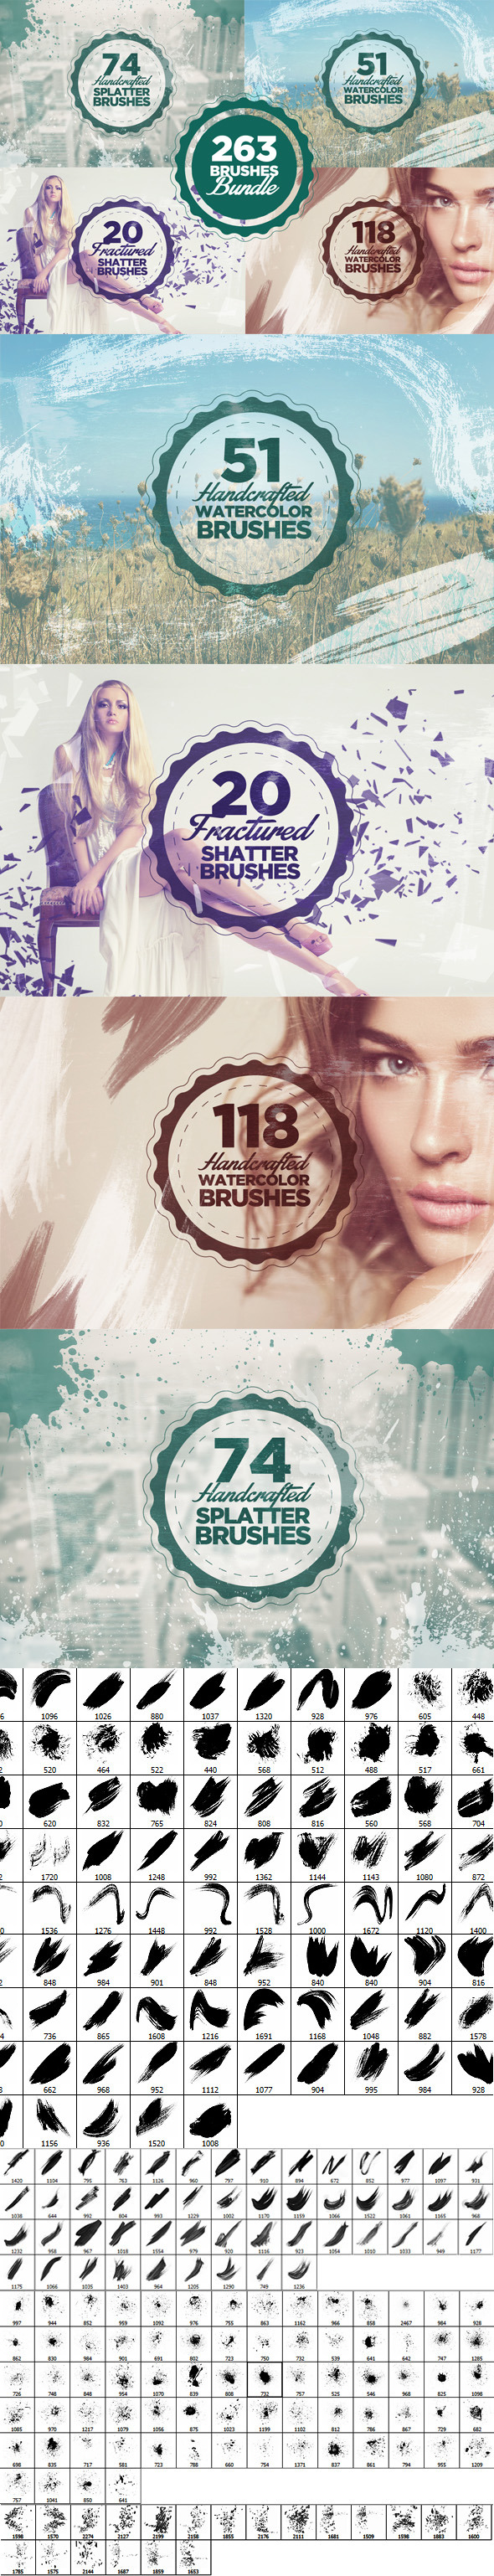 263 Photoshop Brushes Bundle - Brushes Photoshop